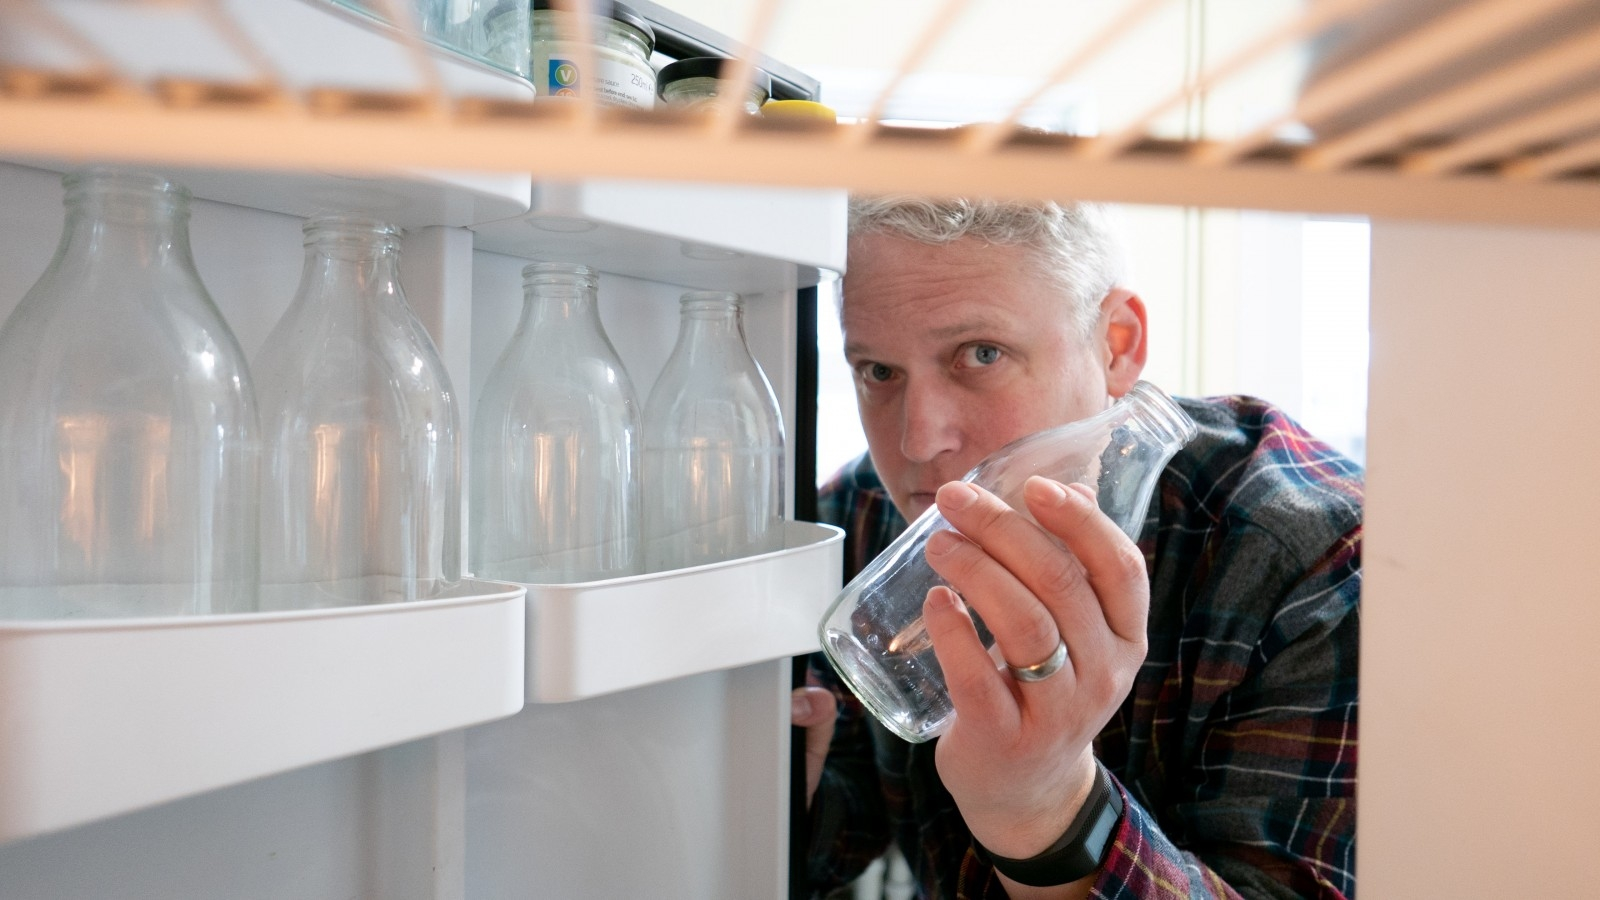 Man Who Switched To Milk Deliveries To Slash His Plastic Consumption Cancels His Subscription - After 50 Thefts Of Bottles From His Doorstep